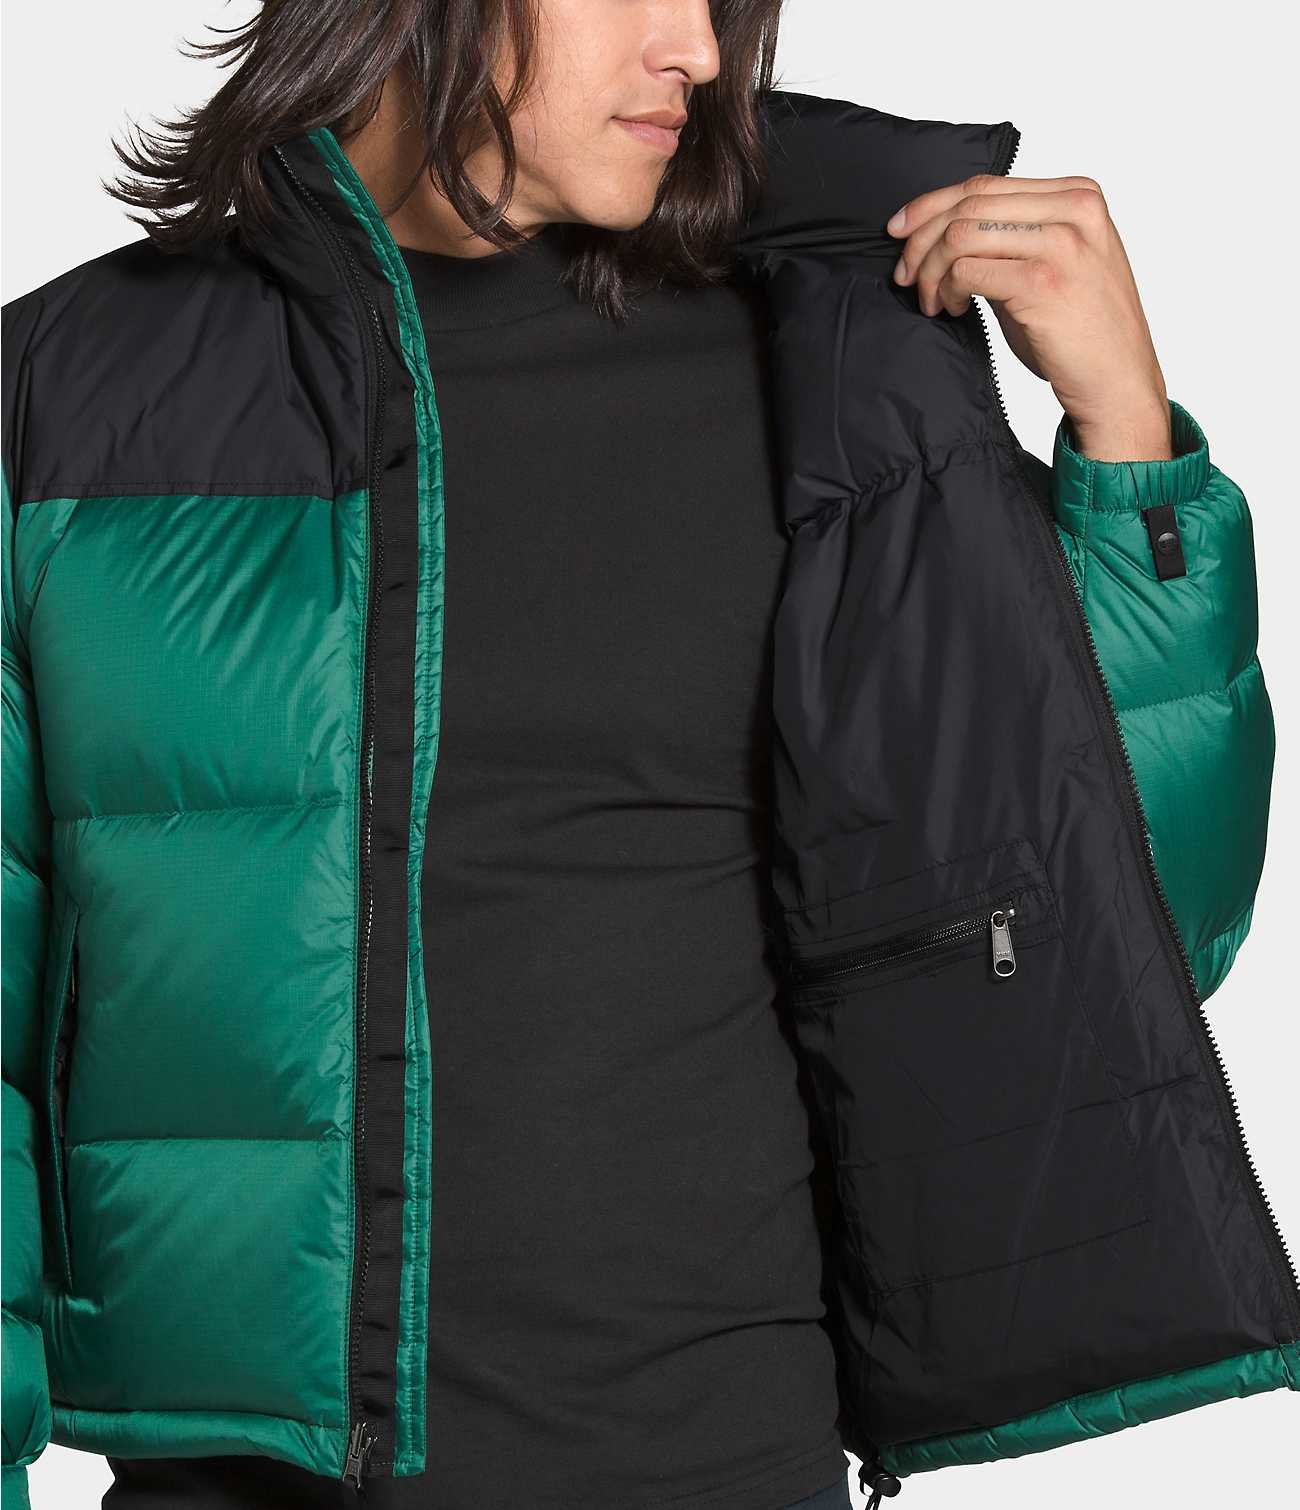 THE NORTH FACE M'S OUTDOOR JKT 1996 RETRO NUPTSE JACKET - EVERGREEN